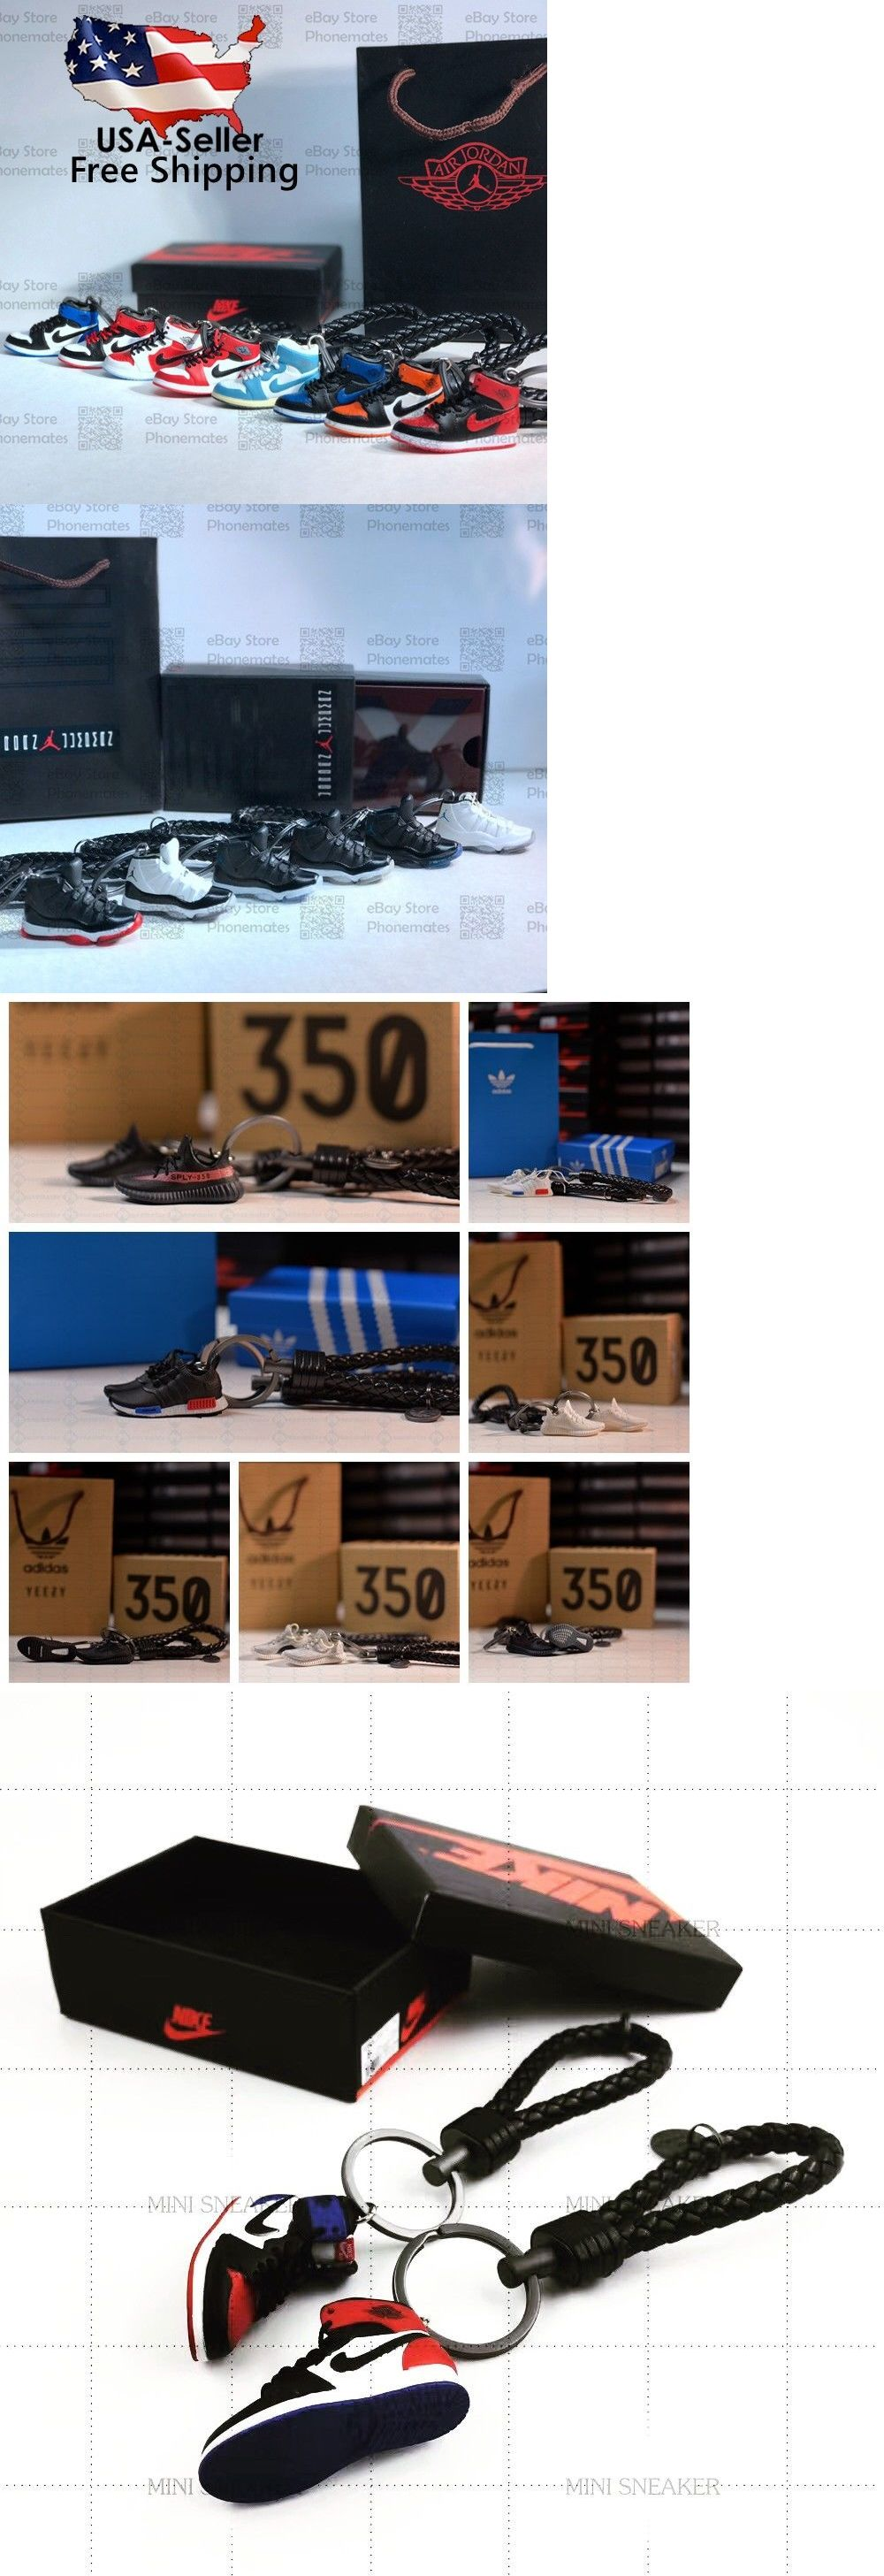 new style 235b3 b25d2 Key Chains Rings and Cases 52373  Kicksmini Air Jordan Yeezy Handcrafted 3D  Sneaker Keychain With Box Bag Gift Set -  BUY IT NOW ONLY   15.99 on  eBay  ...